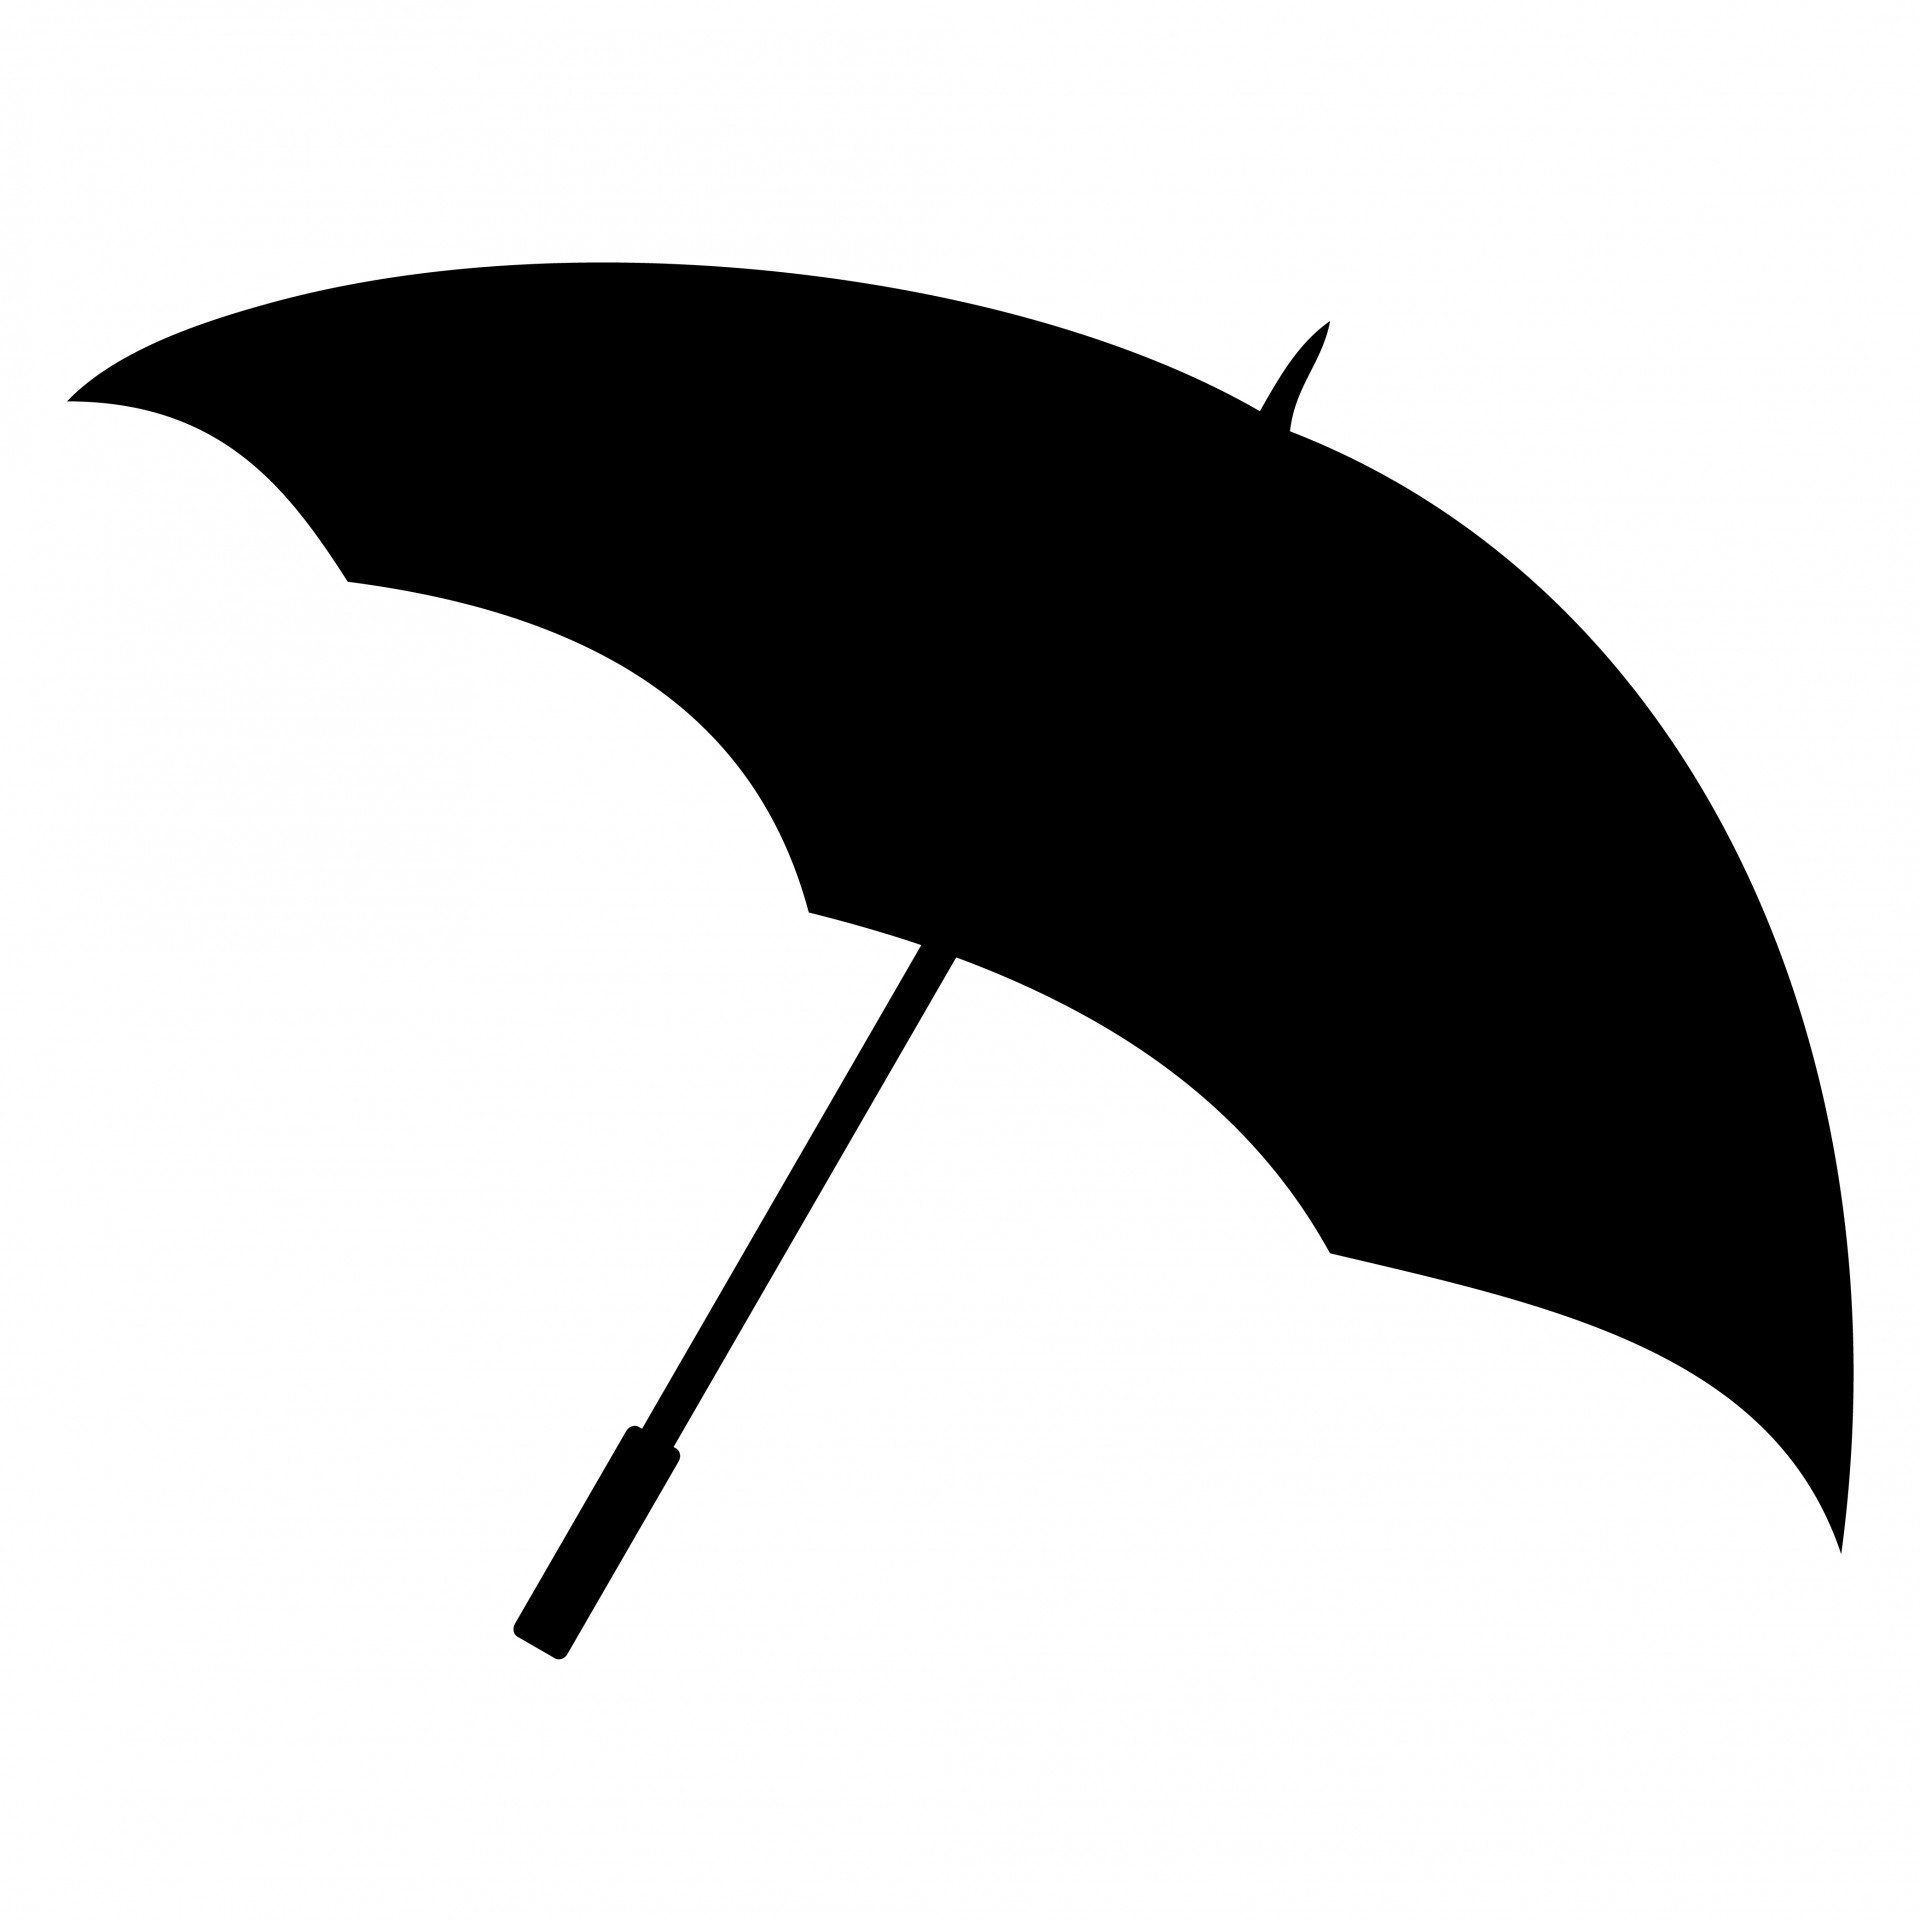 Umbrella clipart free stock . - Umbrella Clipart